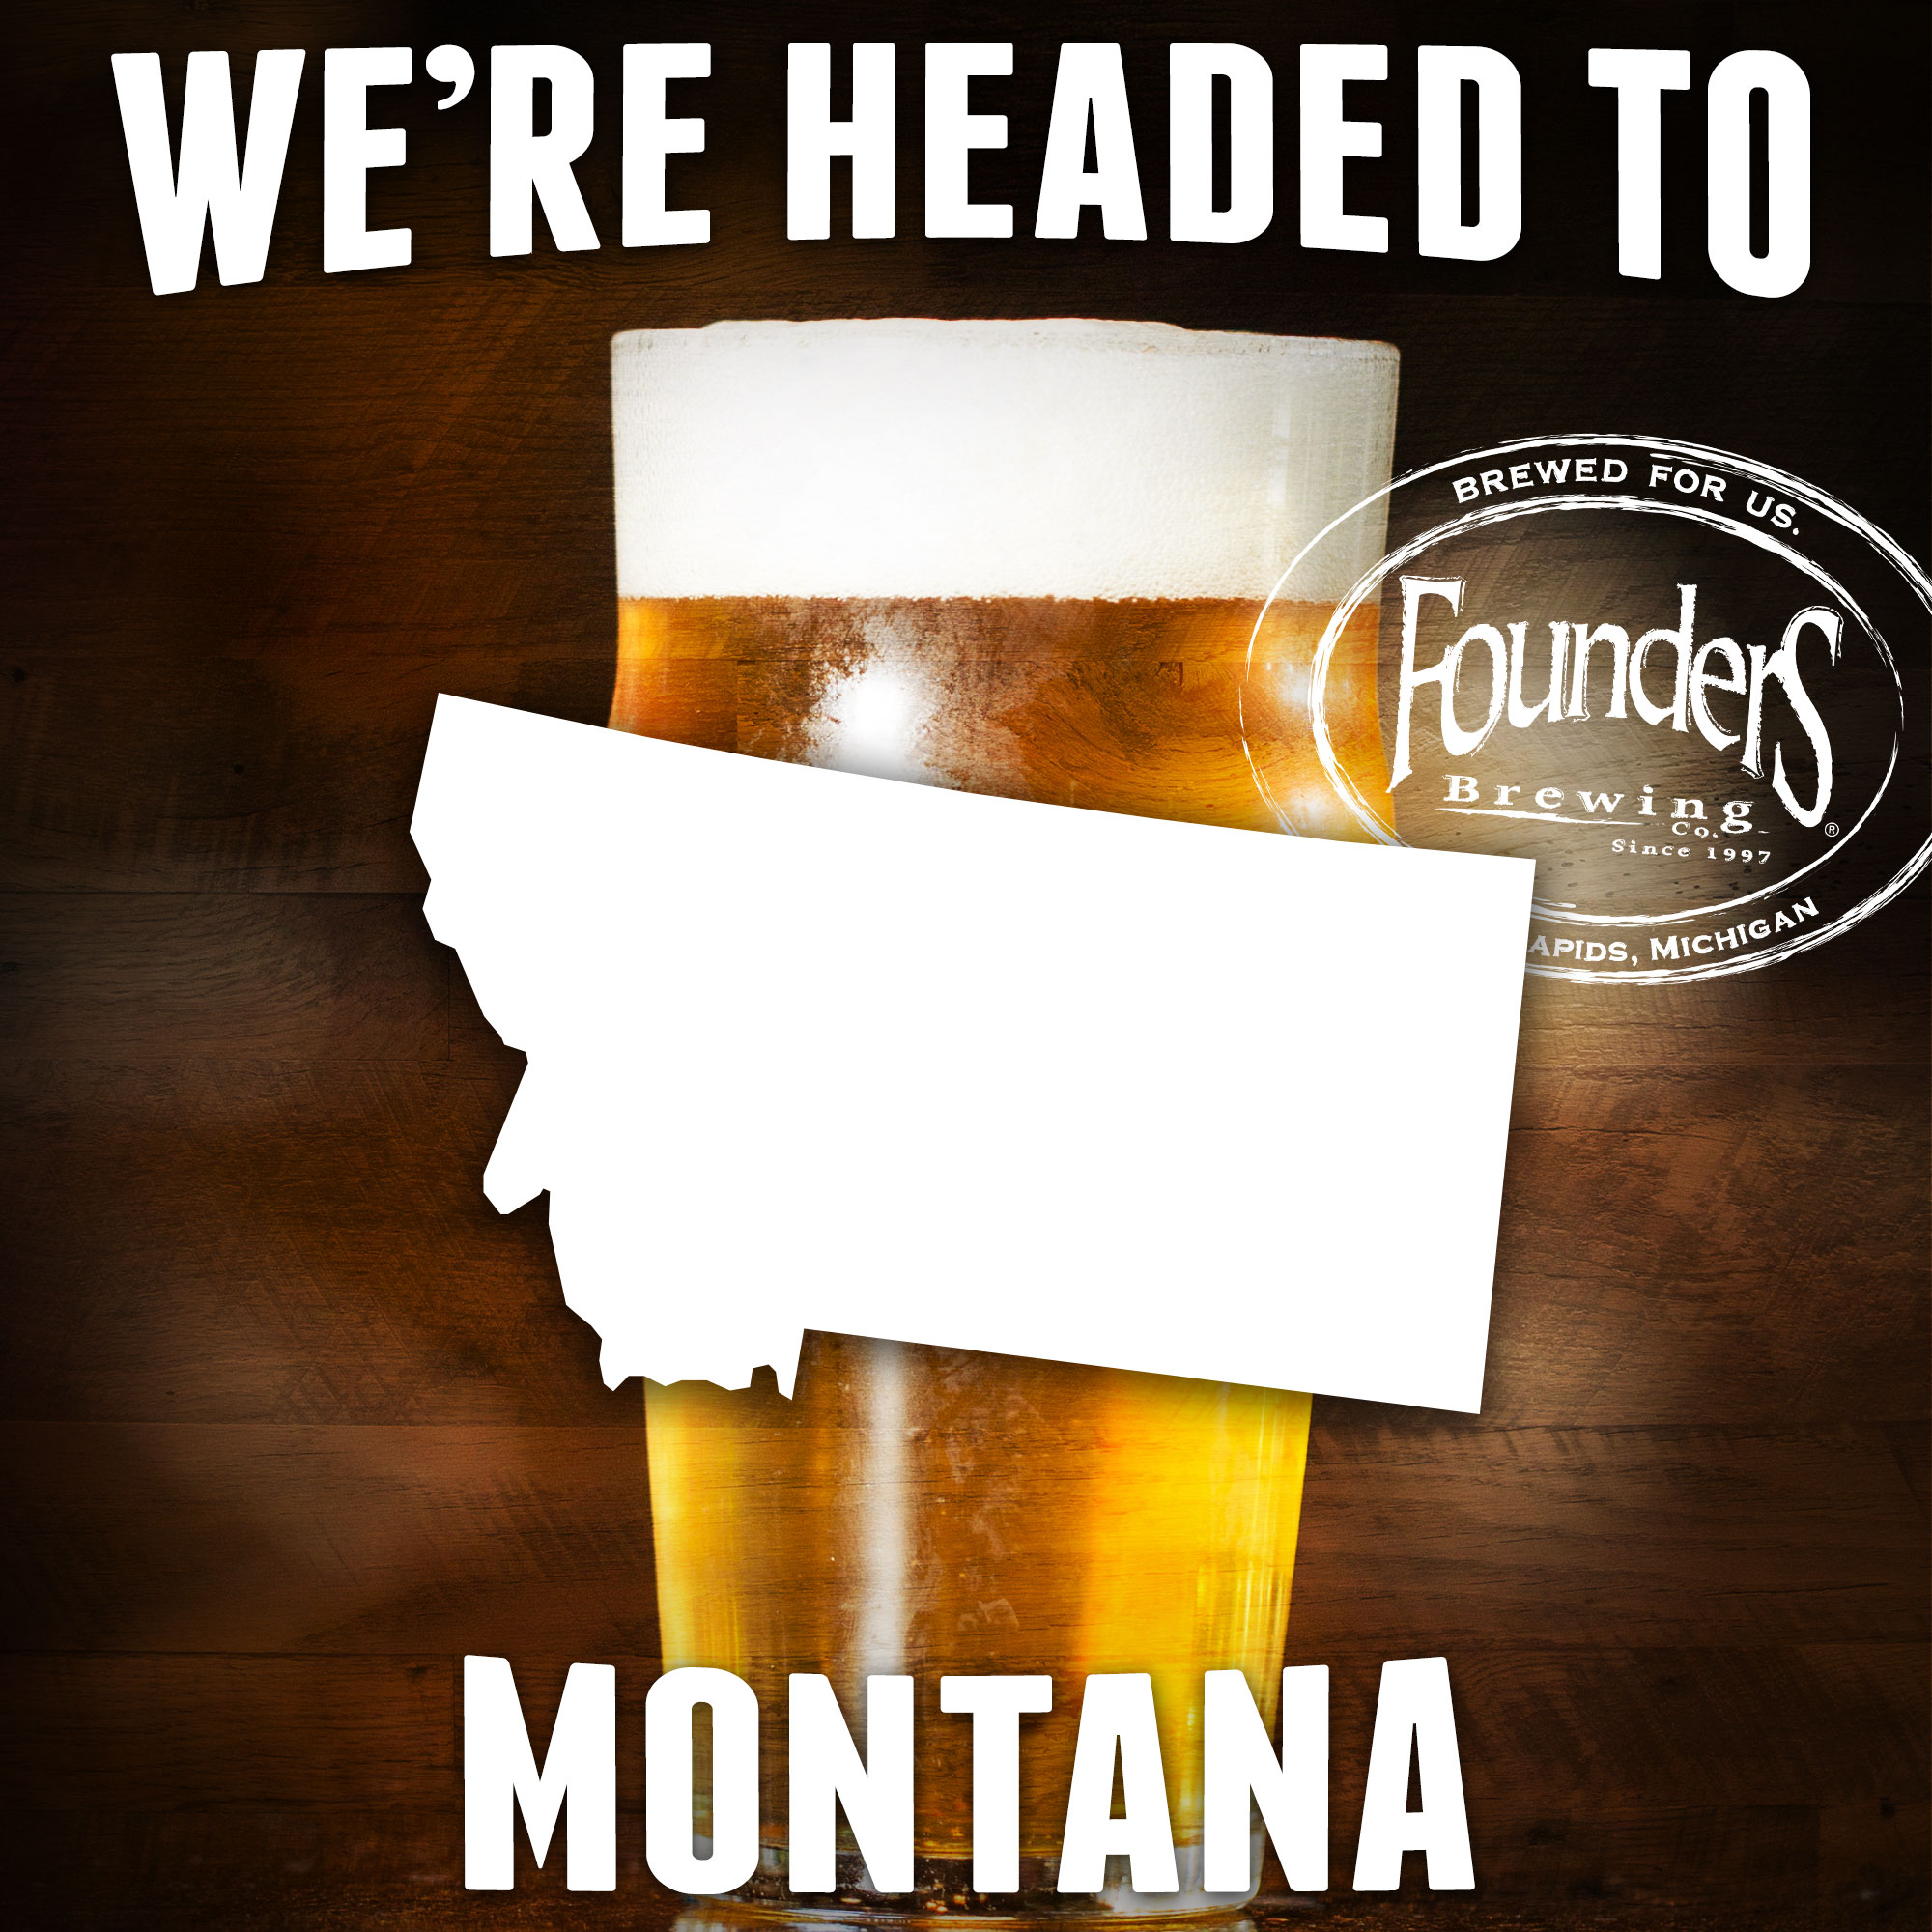 Founders promotion showing that they're coming to Montana